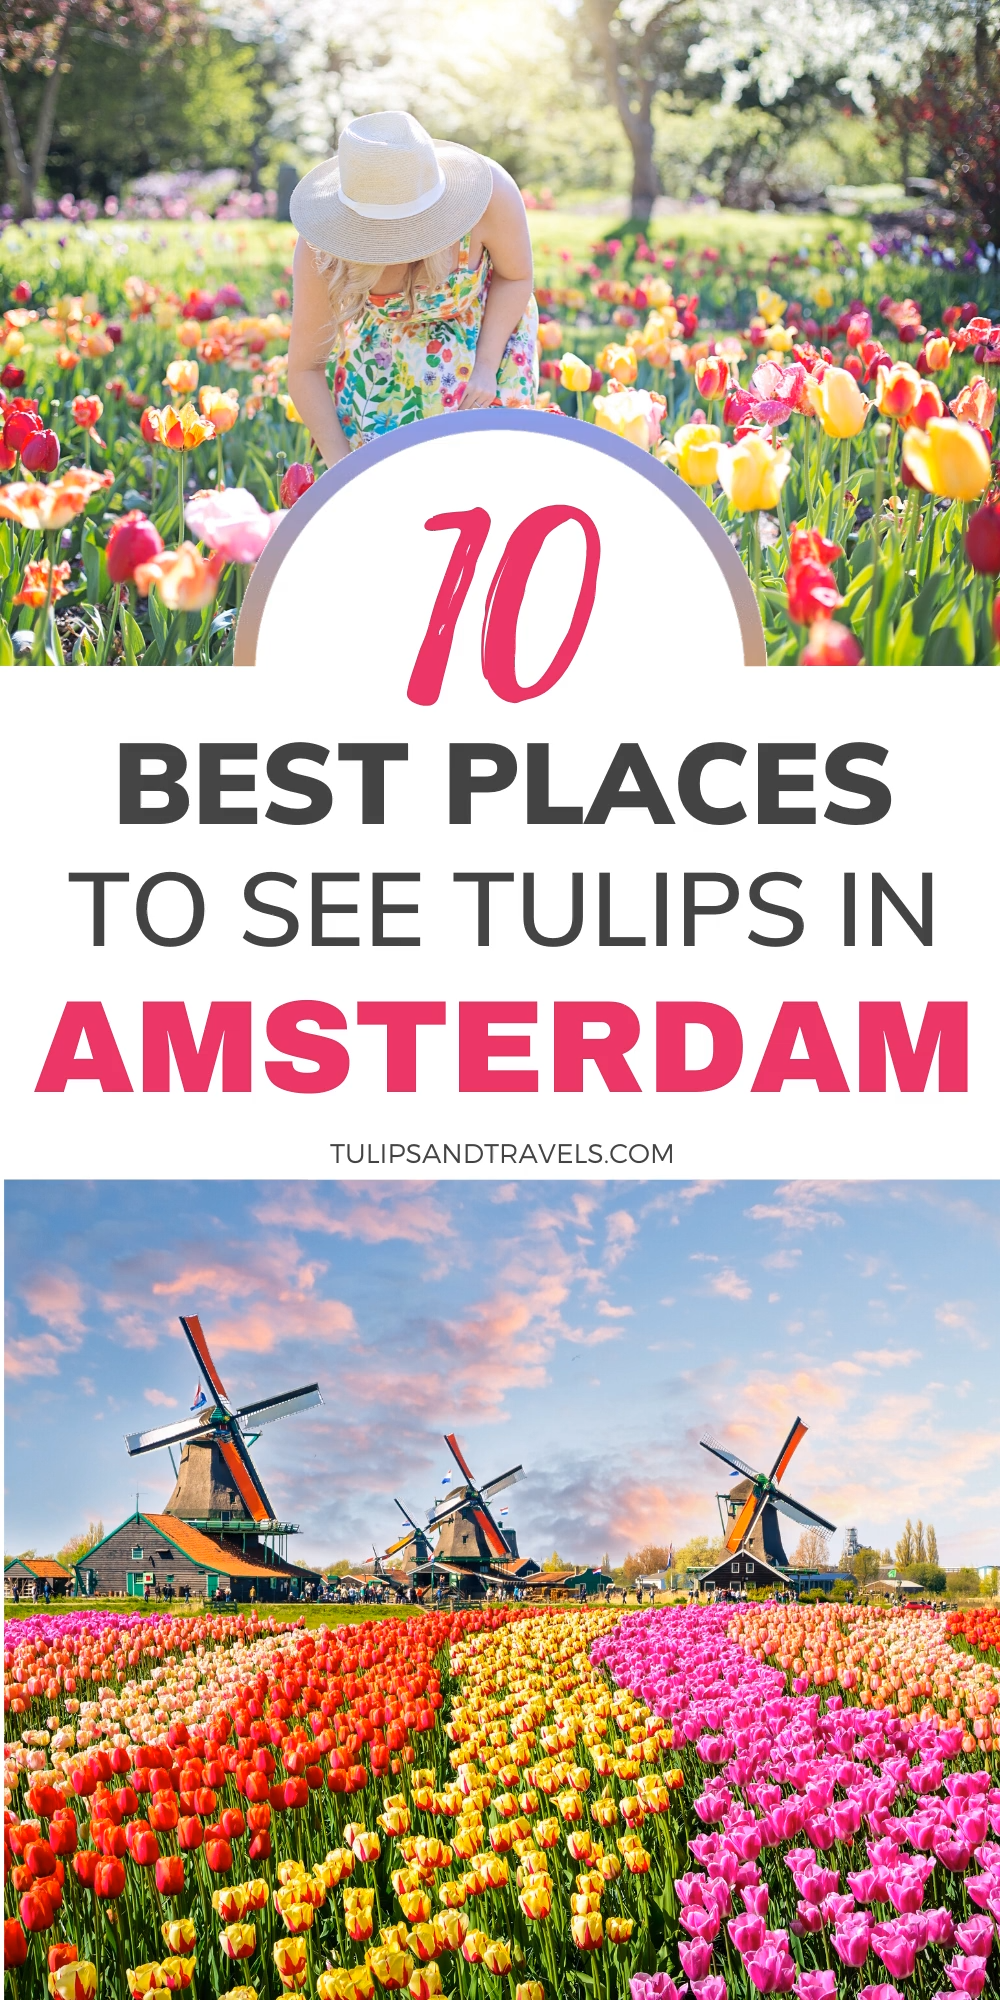 Every Spring from mid-March to mid-May, the Netherlands transforms into a colorful paradise full of gorgeous blooming tulips. Make sure you don't miss out on Tulip Season 2020 and come visit Amsterdam and Keukenhof this Spring! #amsterdam #netherlands #tulips #holland #tulipseason #traveltips #travelguide #keukenhof #lisse